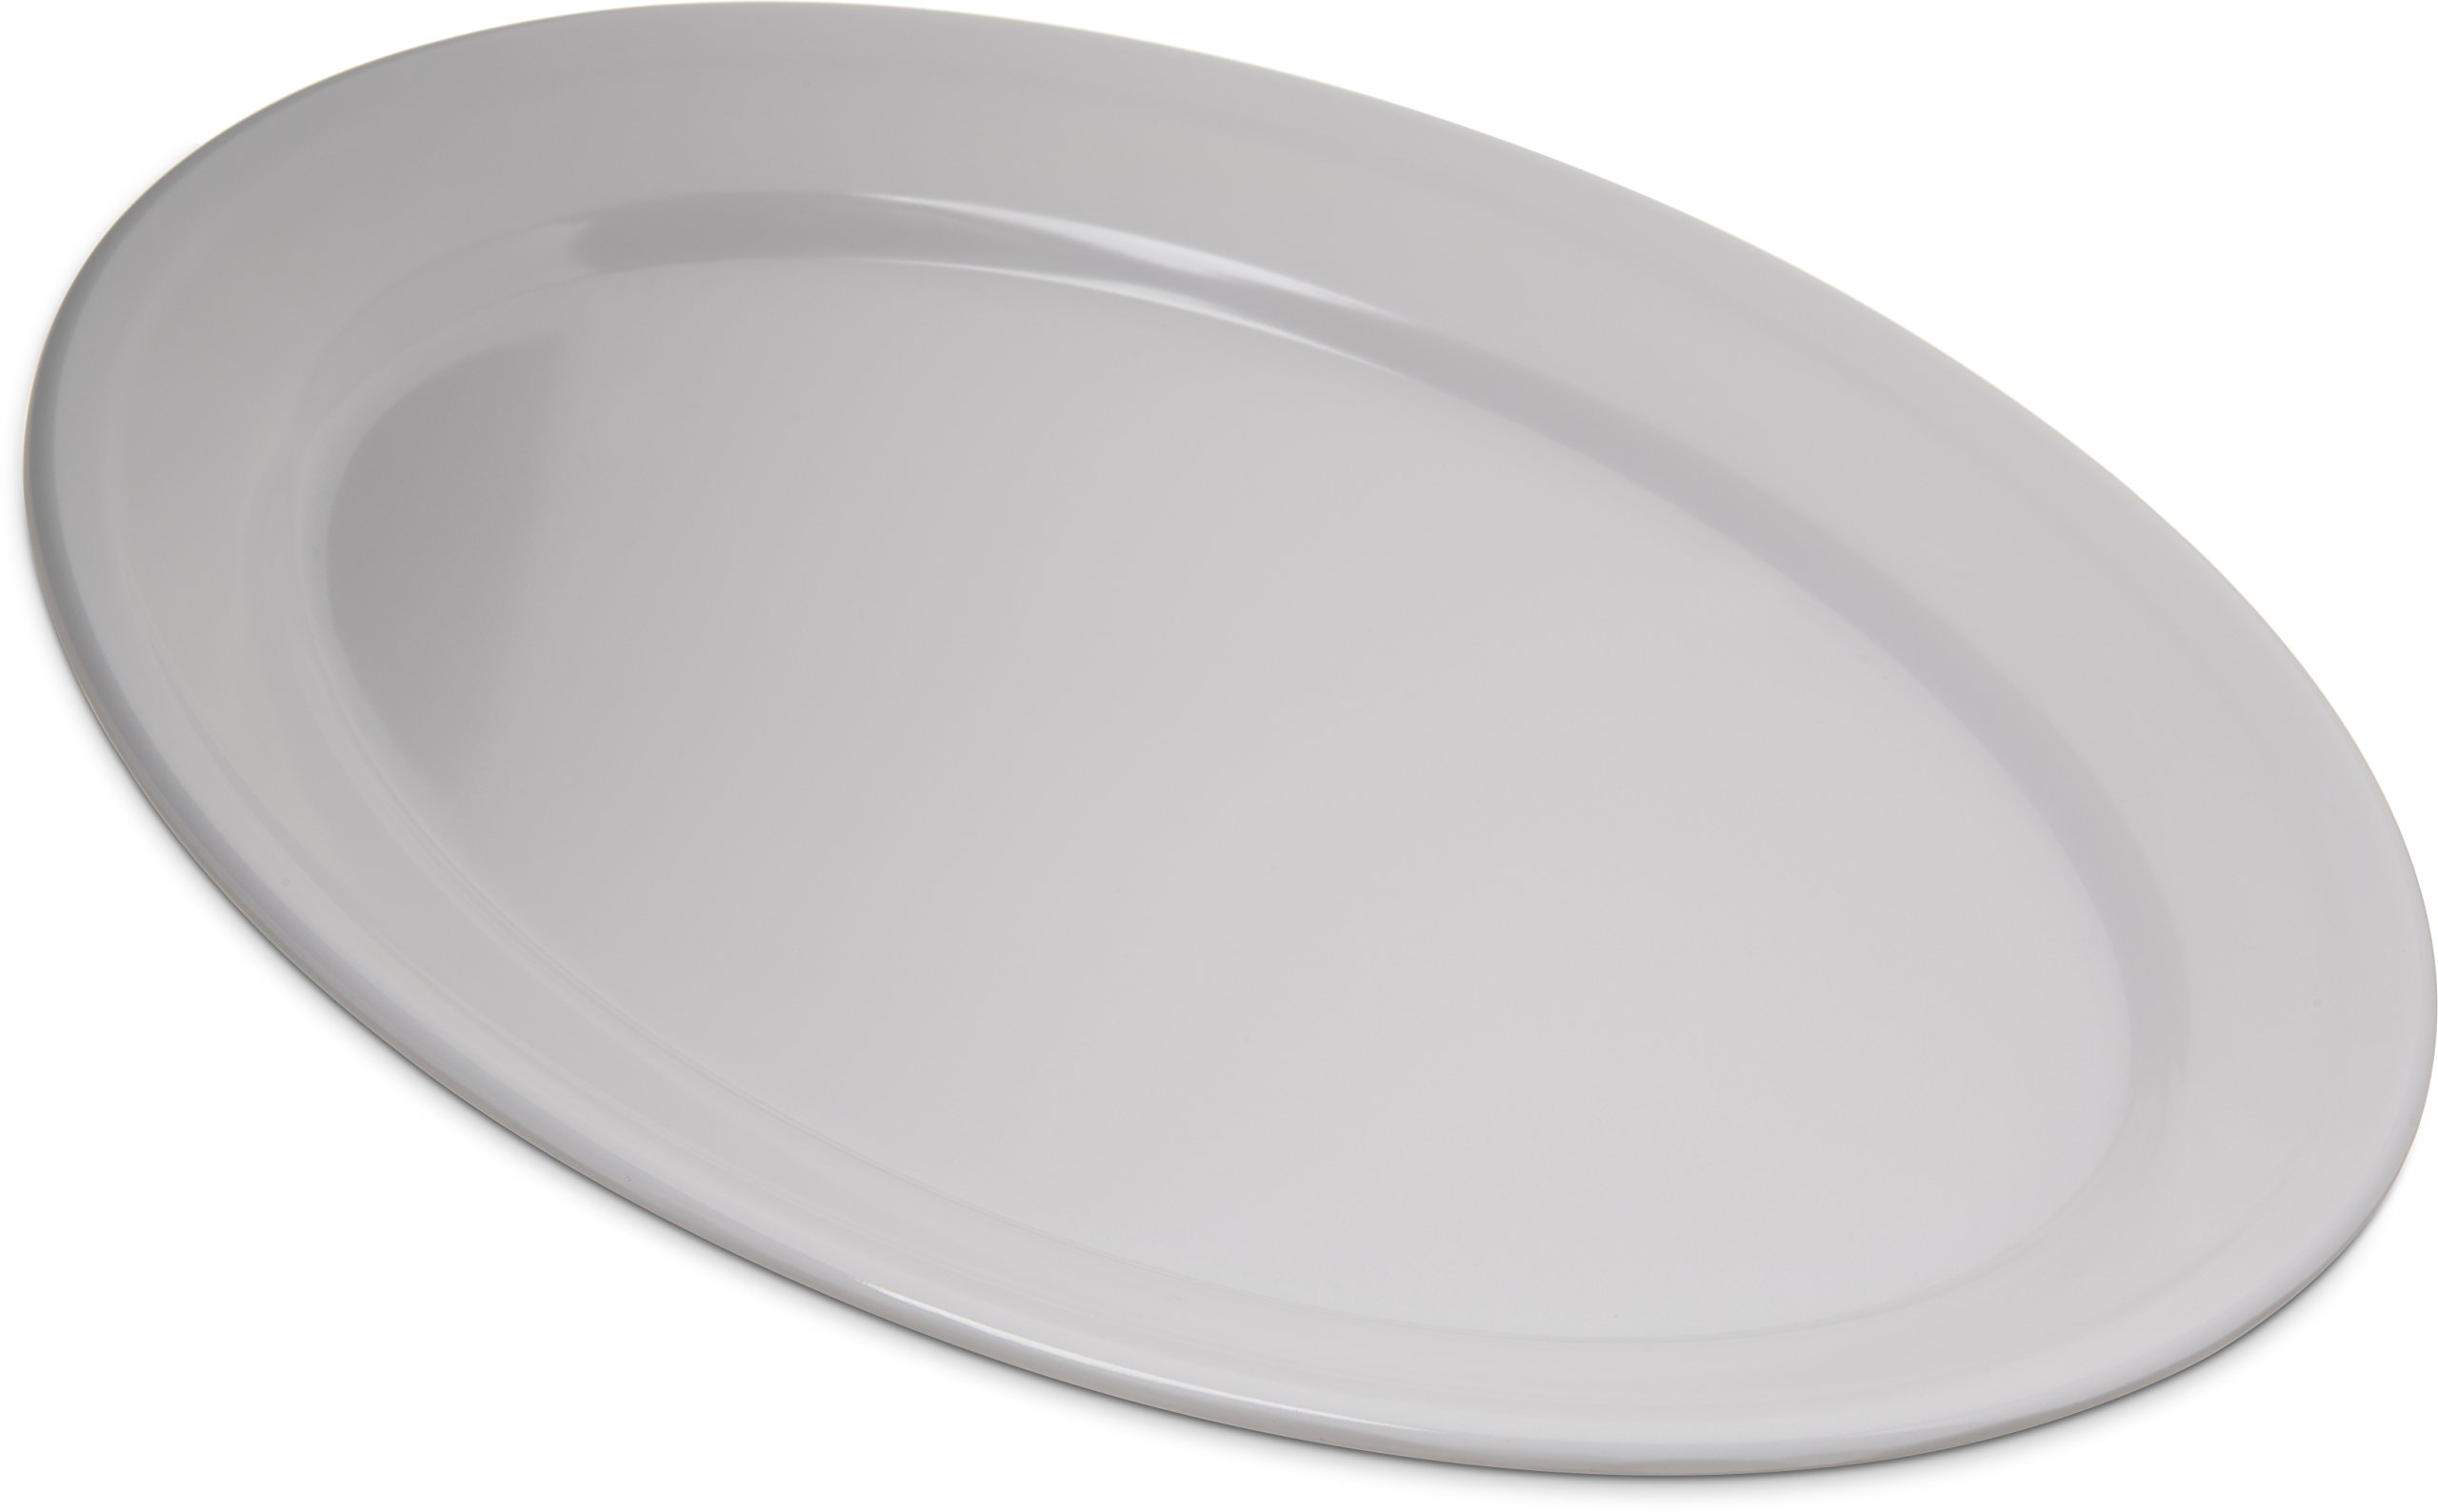 Carlisle 4356002 Dallas Ware Melamine Oval Platter Tray, 12'' x 8.50'', White (Pack of 24)